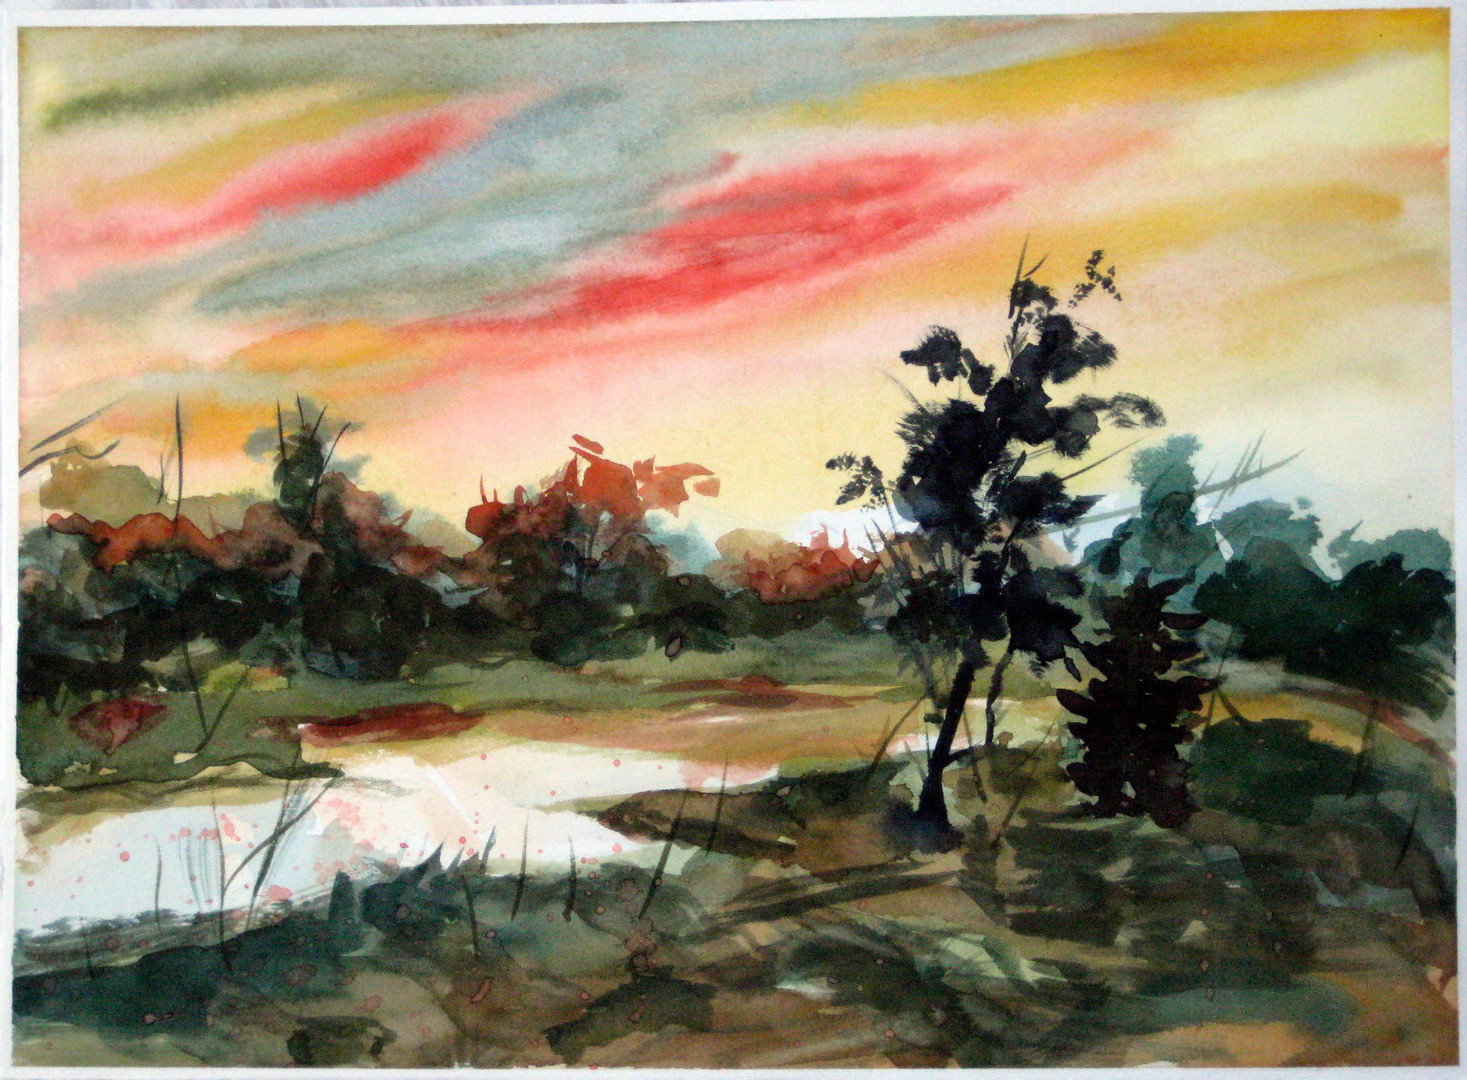 watercolor landscape 160707.jpg